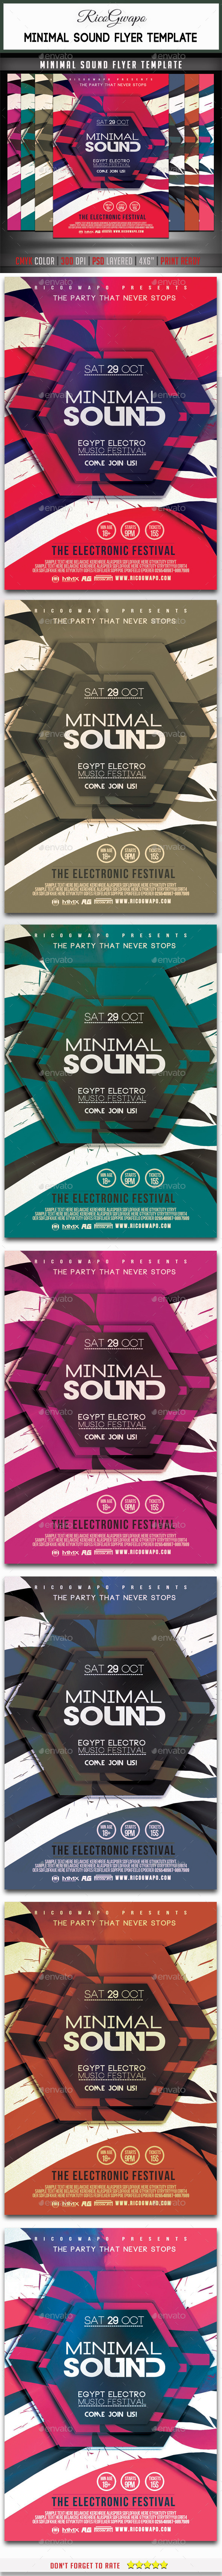 Minimal Sound Flyer Template - Clubs & Parties Events